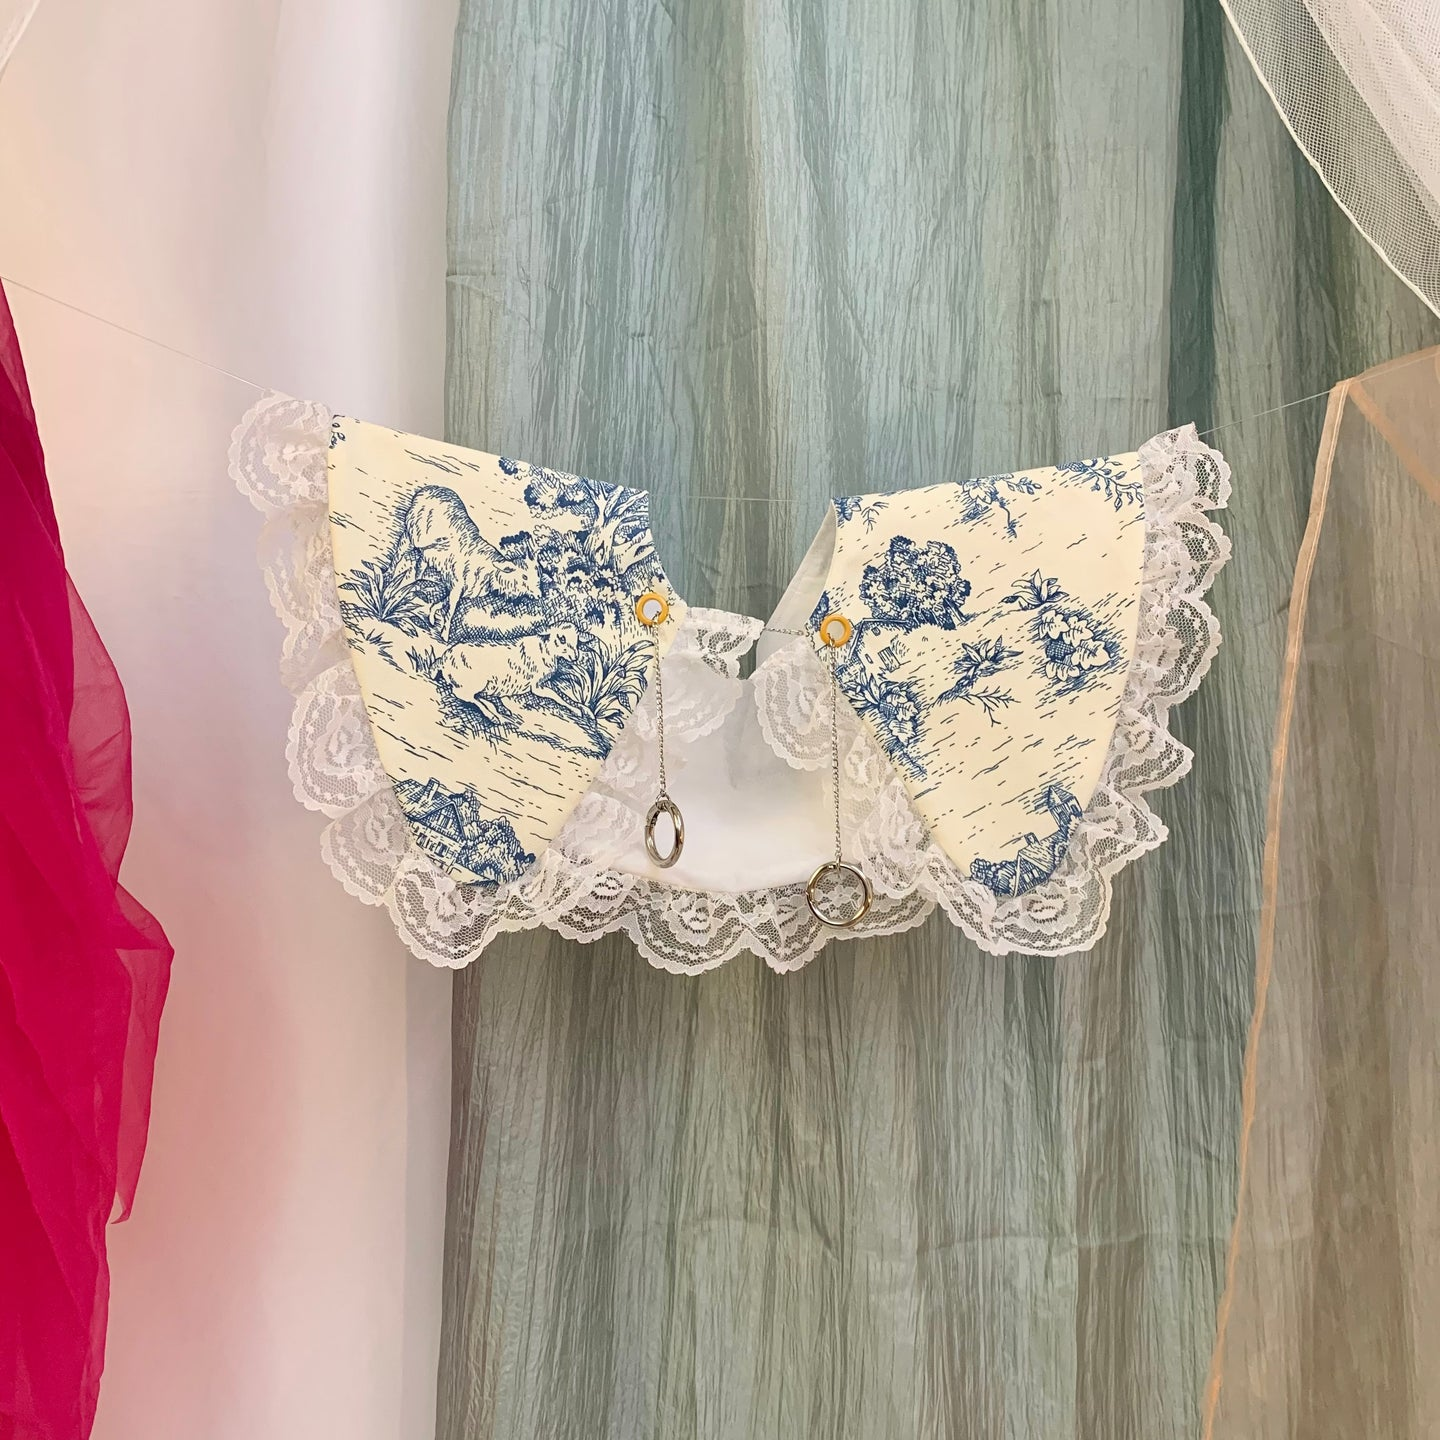 Toile + lace chain collar